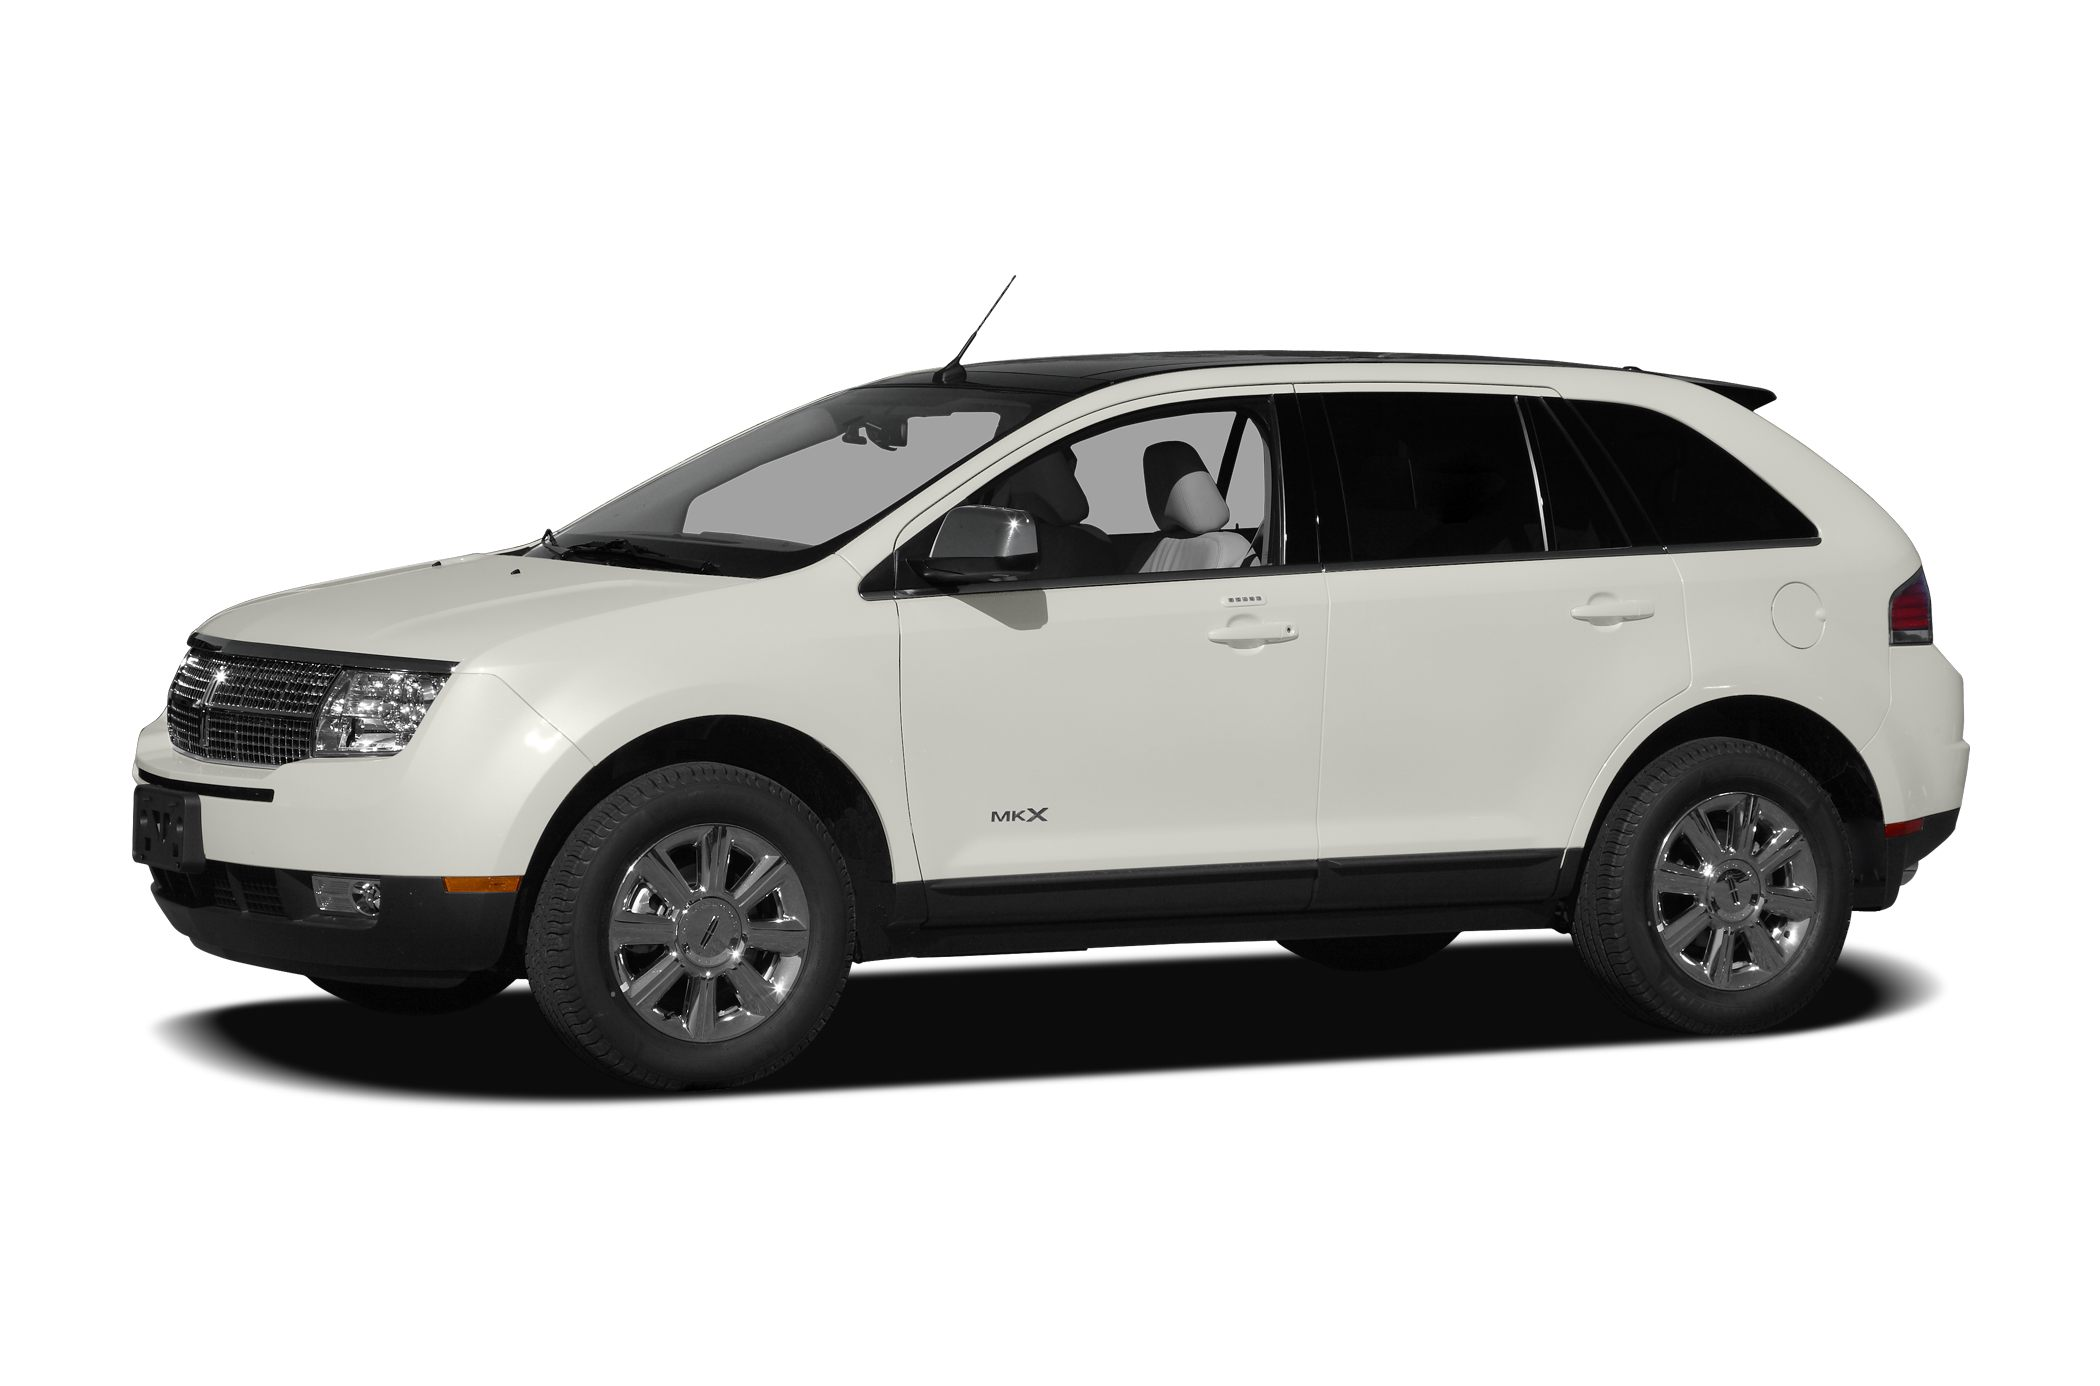 2008 Lincoln MKX Base This beautiful 2008 Lincoln MXK is Gently-driven low miles- ONLY 64k miles